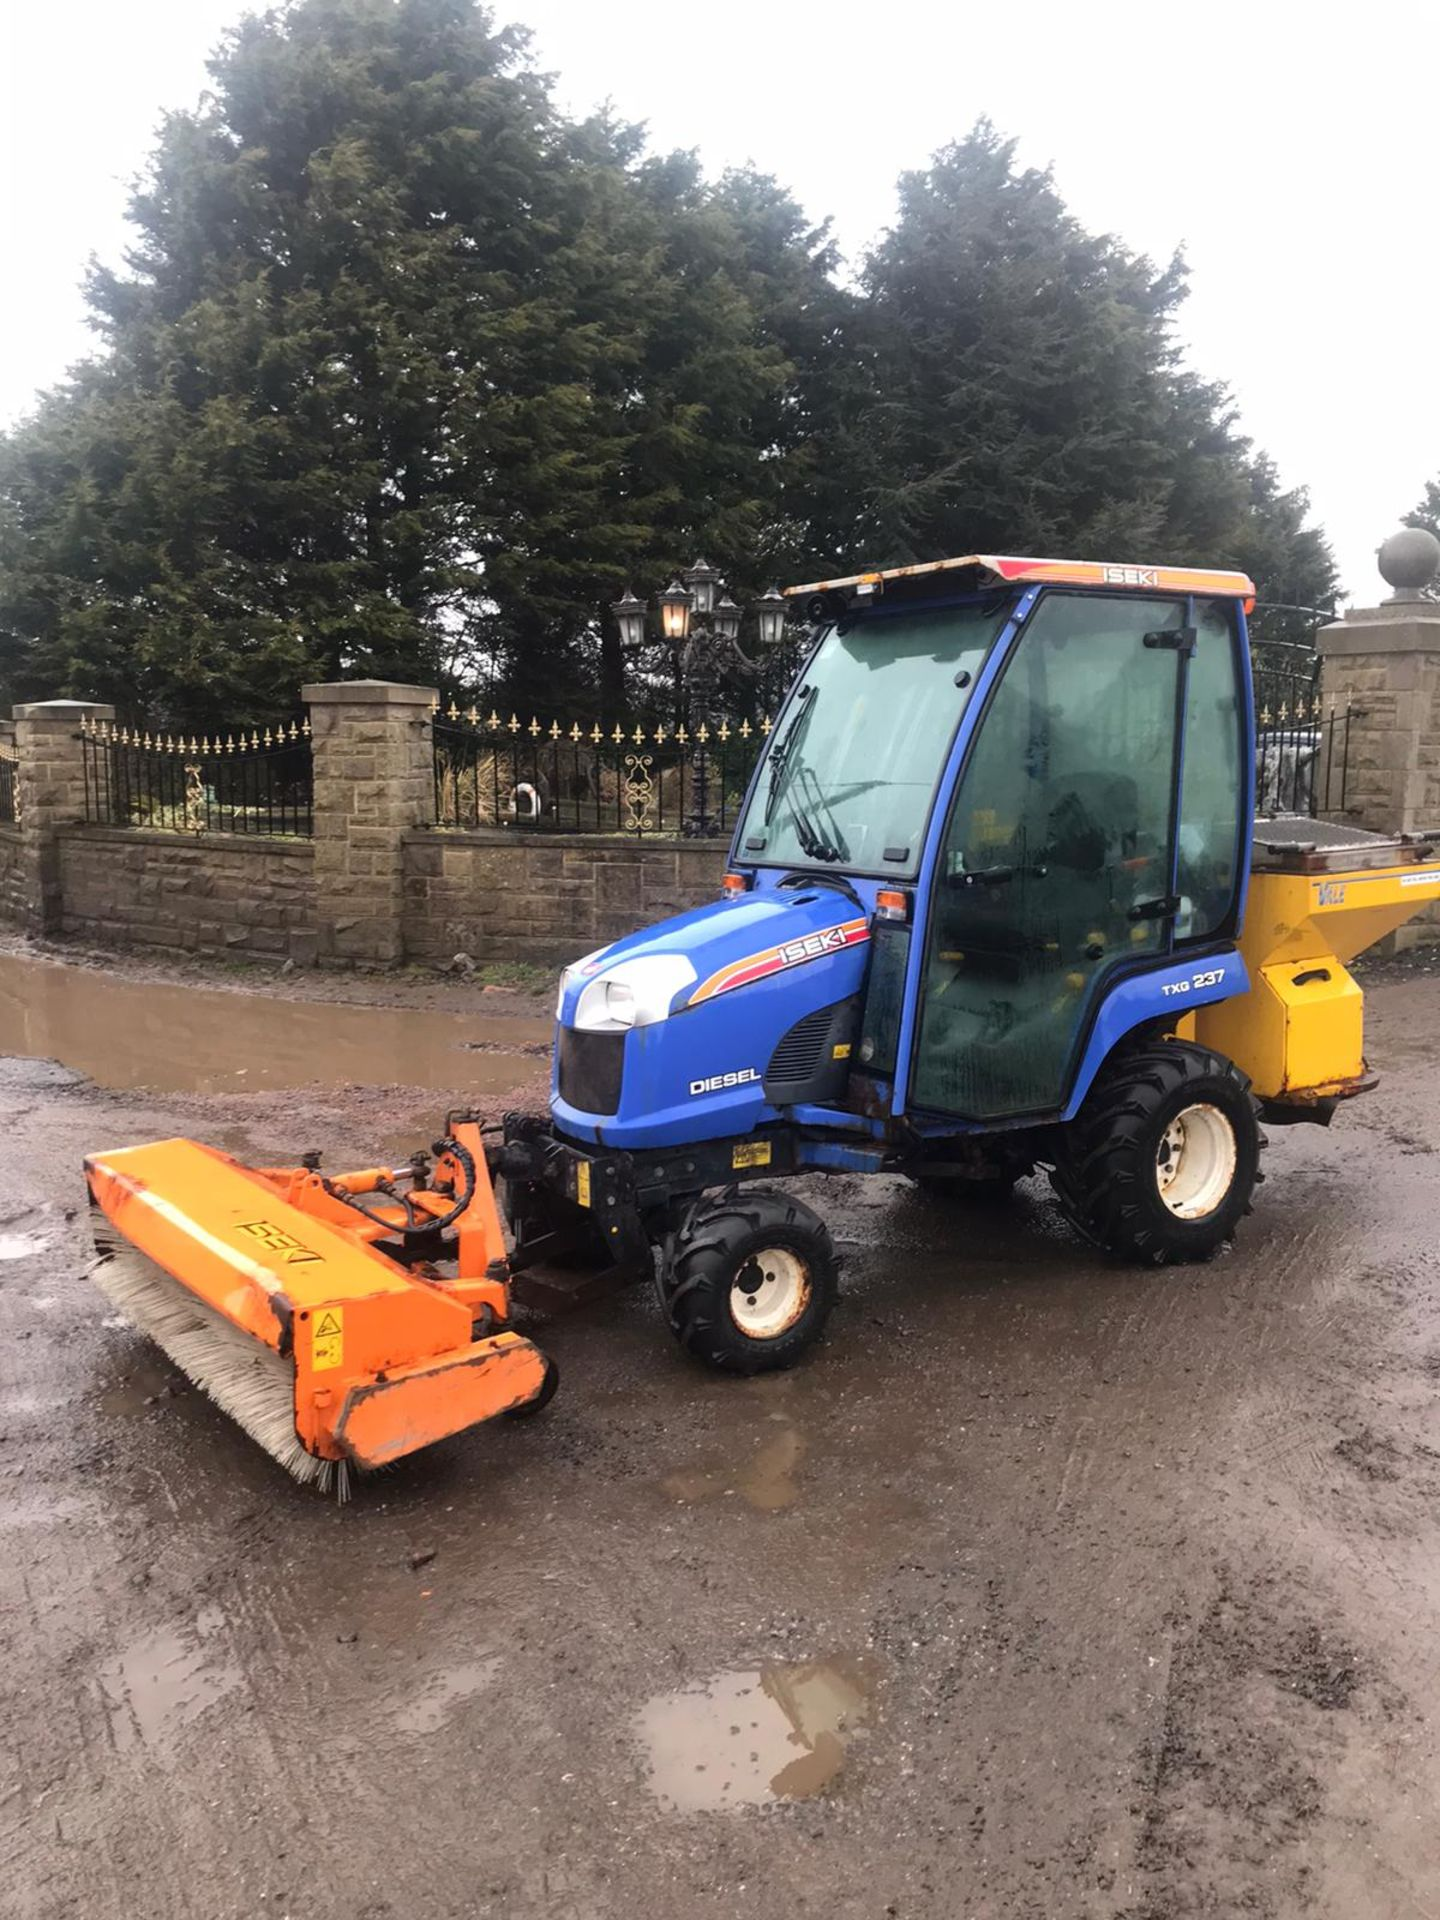 Los 39 - ISEKI TXG237 COMPACT TRACTOR, FULL GLASS CAB, ONLY 396 HOURS, YEAR 2011 *PLUS VAT*